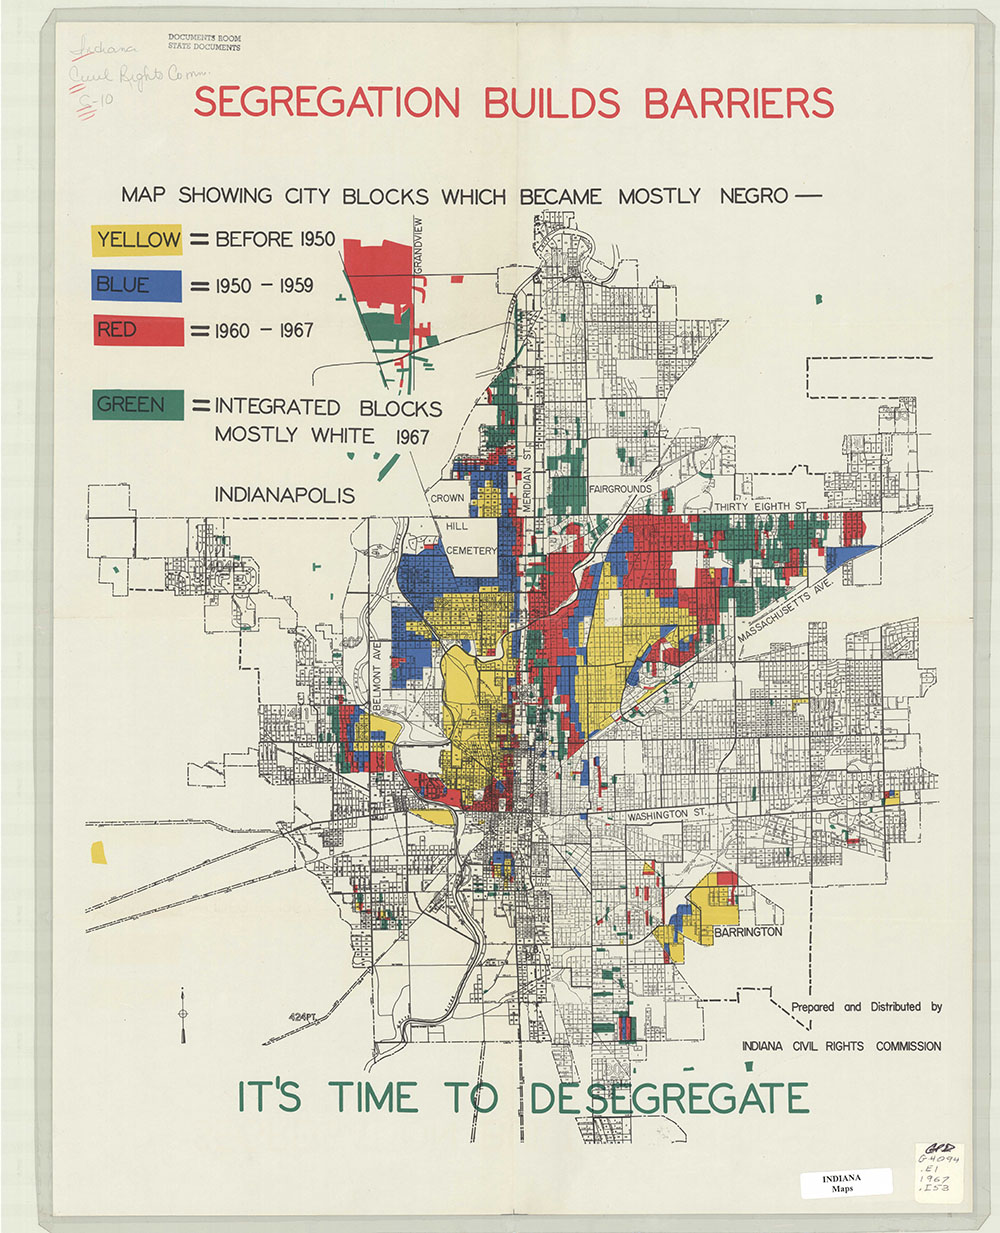 Crown Point Indiana Zoning Map : crown, point, indiana, zoning, Crown, Point, Indiana, Zoning, Maping, Resources